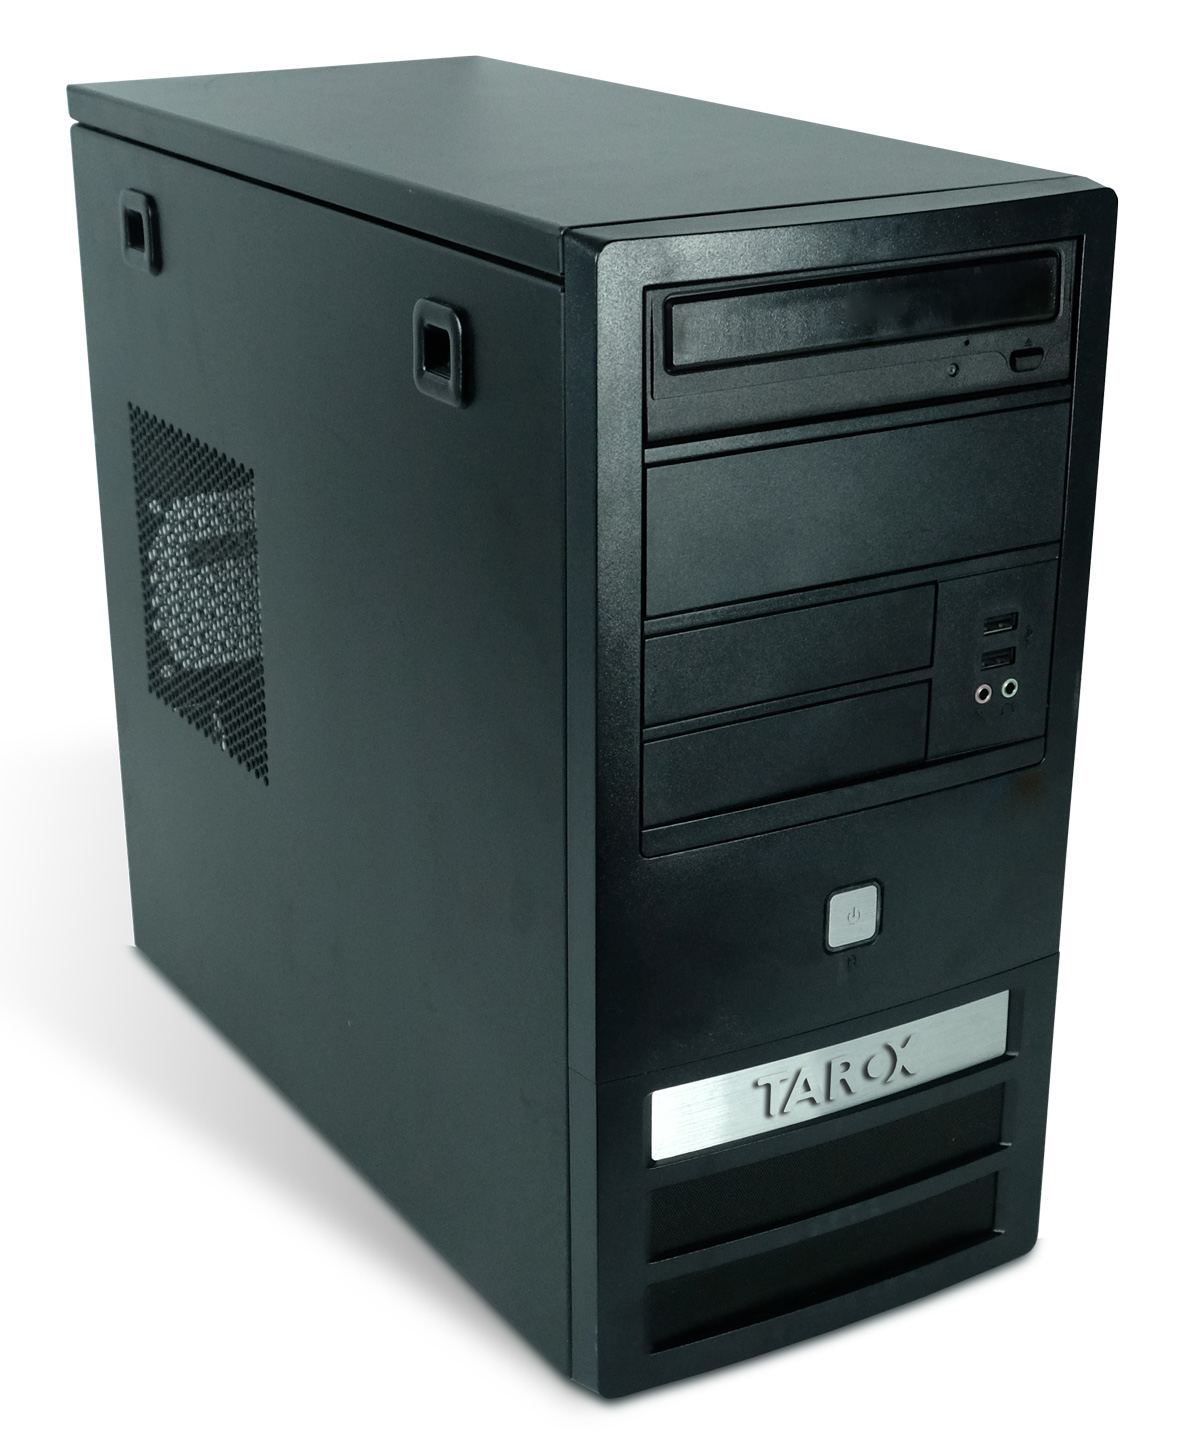 gebraucht pc computer tower p7q core i3 2x 3 06ghz 4gb. Black Bedroom Furniture Sets. Home Design Ideas